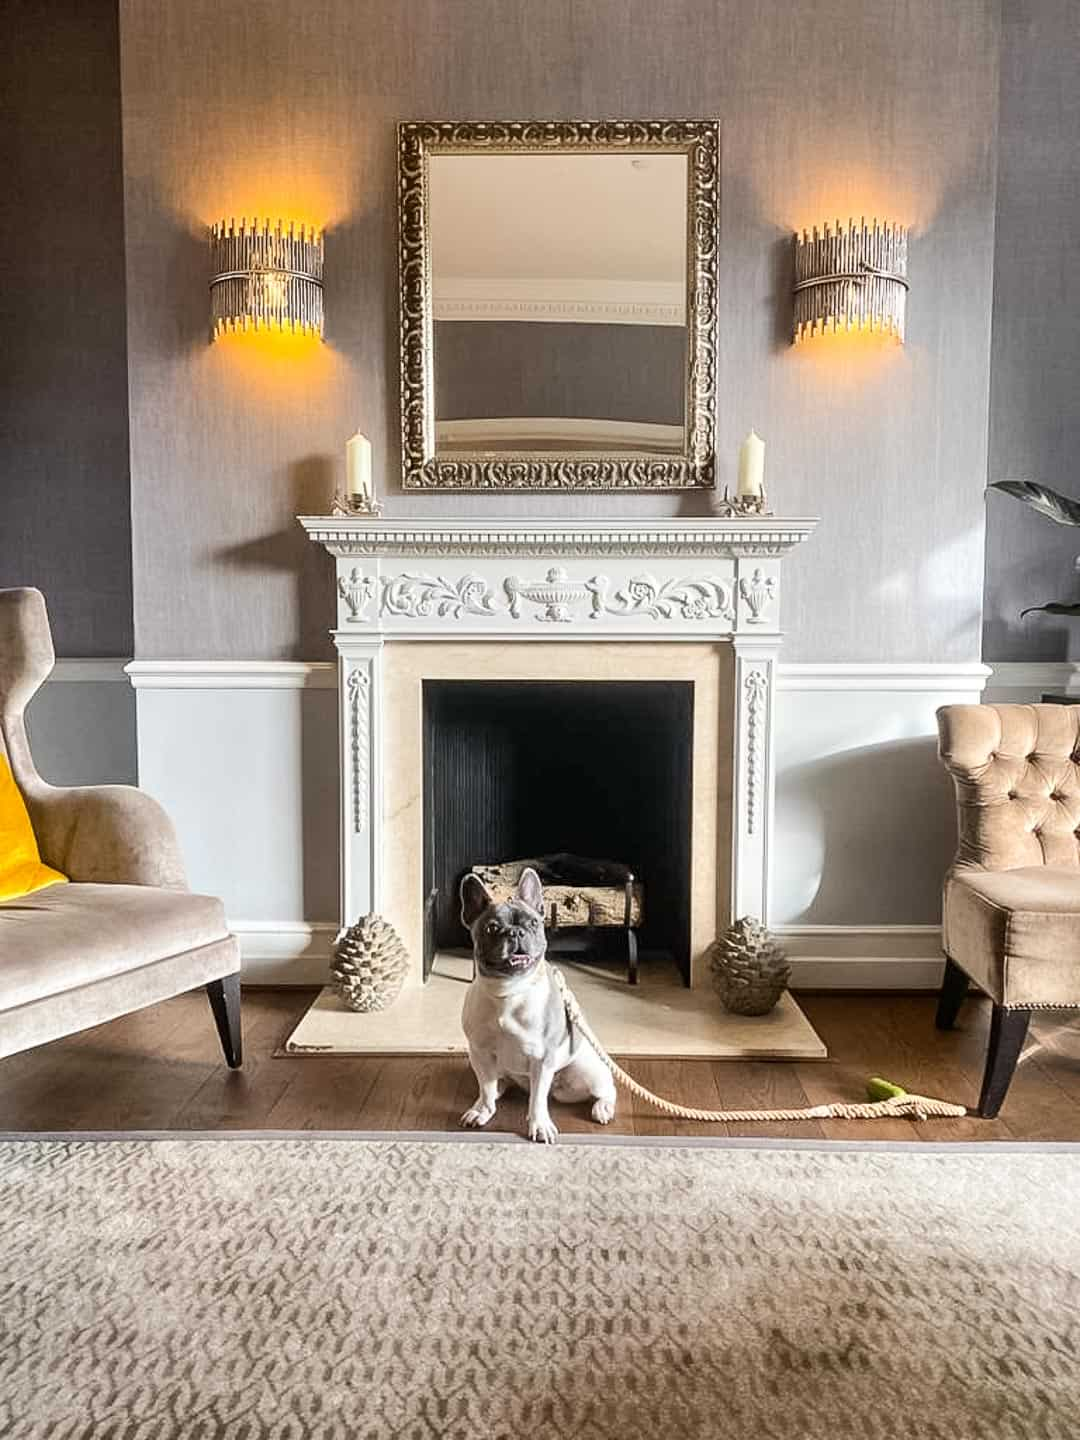 Dogs are very welcome at the Richmond Hill Hotel